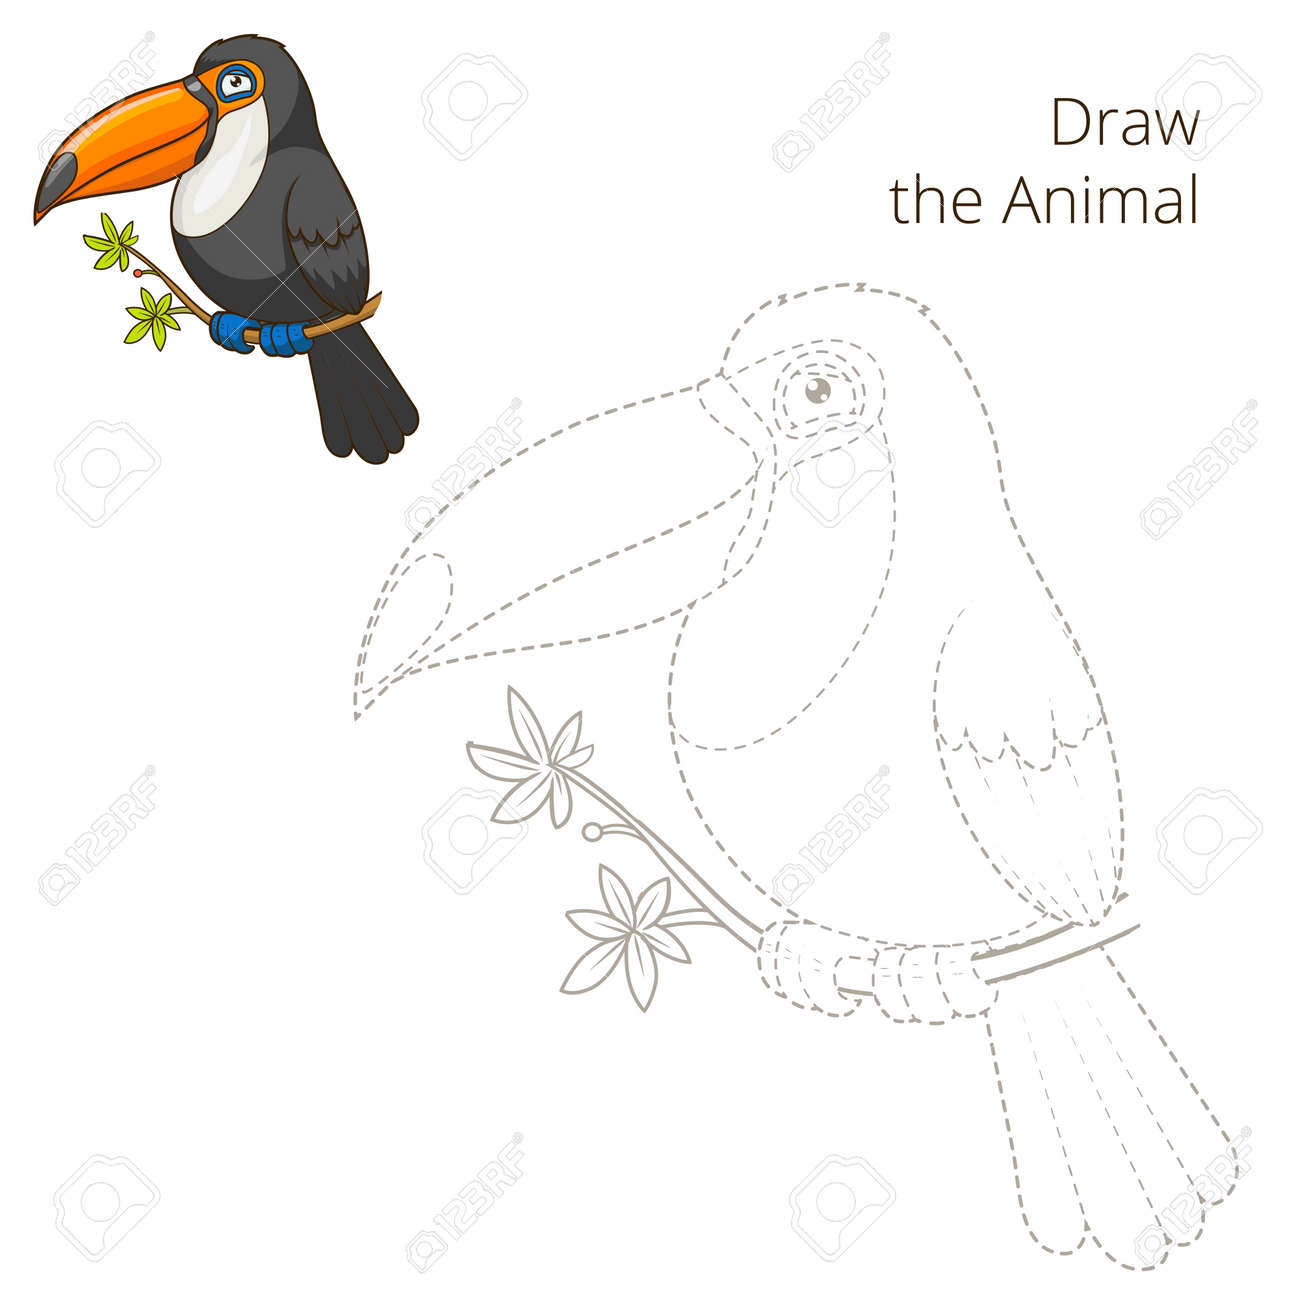 Draw The Animal Toucan Educational Game Colorful Cartoon Vector Royalty Free Cliparts Vectors And Stock Illustration Image 46931017